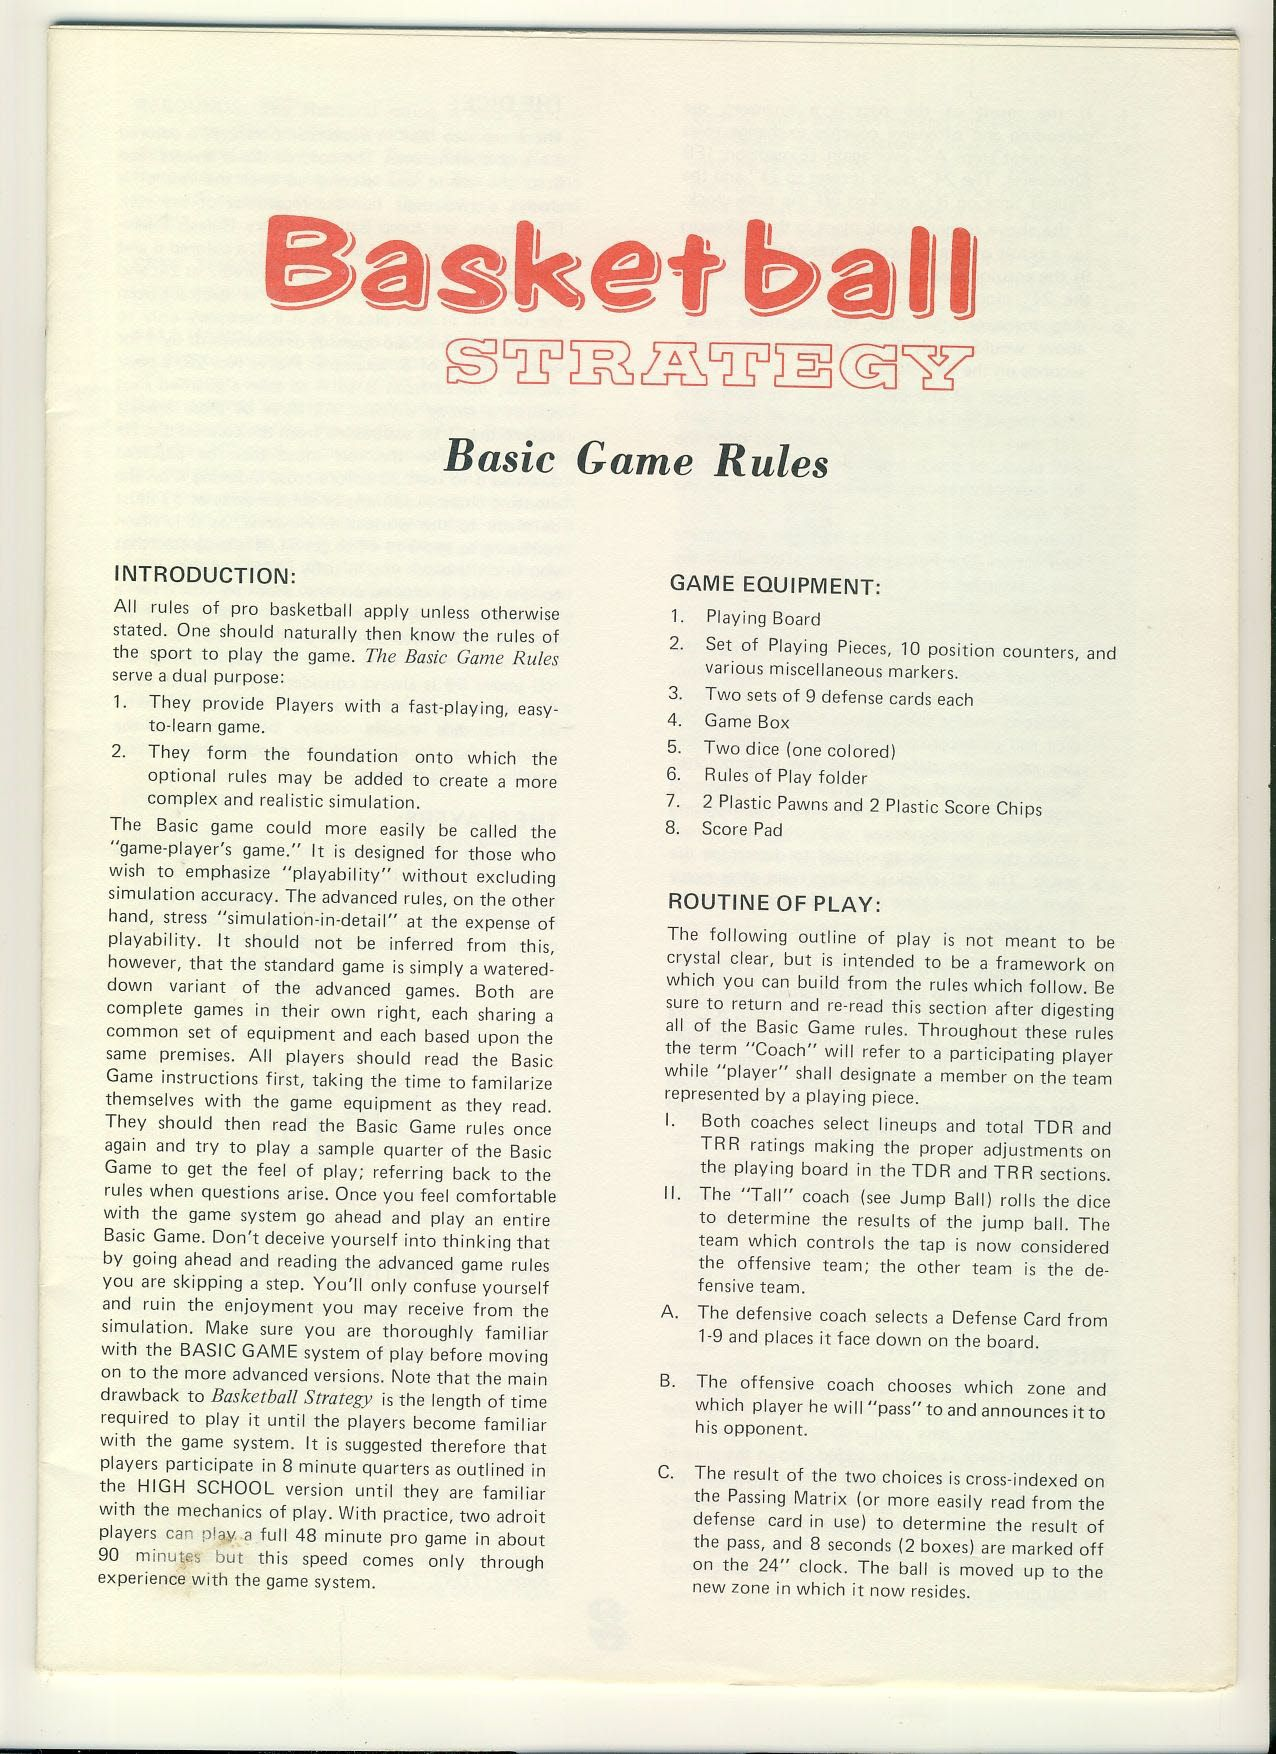 Basketball strategy basic game rules 24 pages ref100008